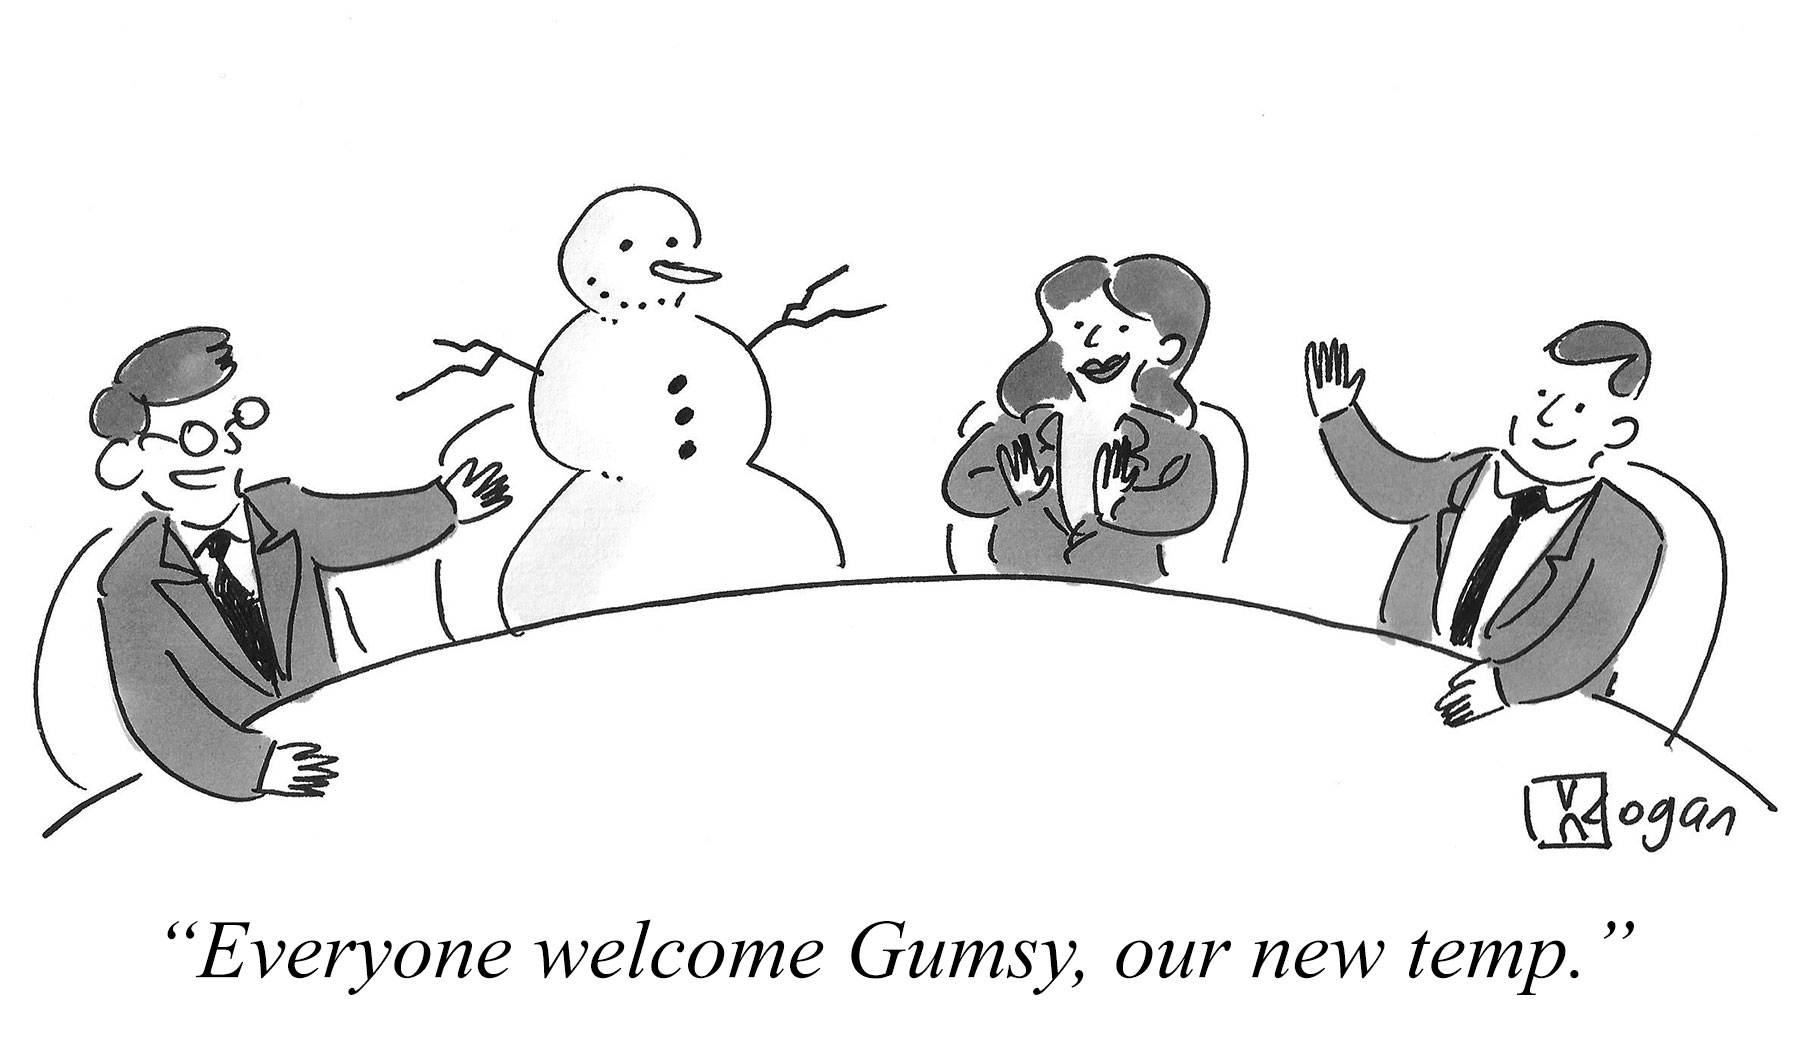 Everyone welcome Gumsy, our new temp.